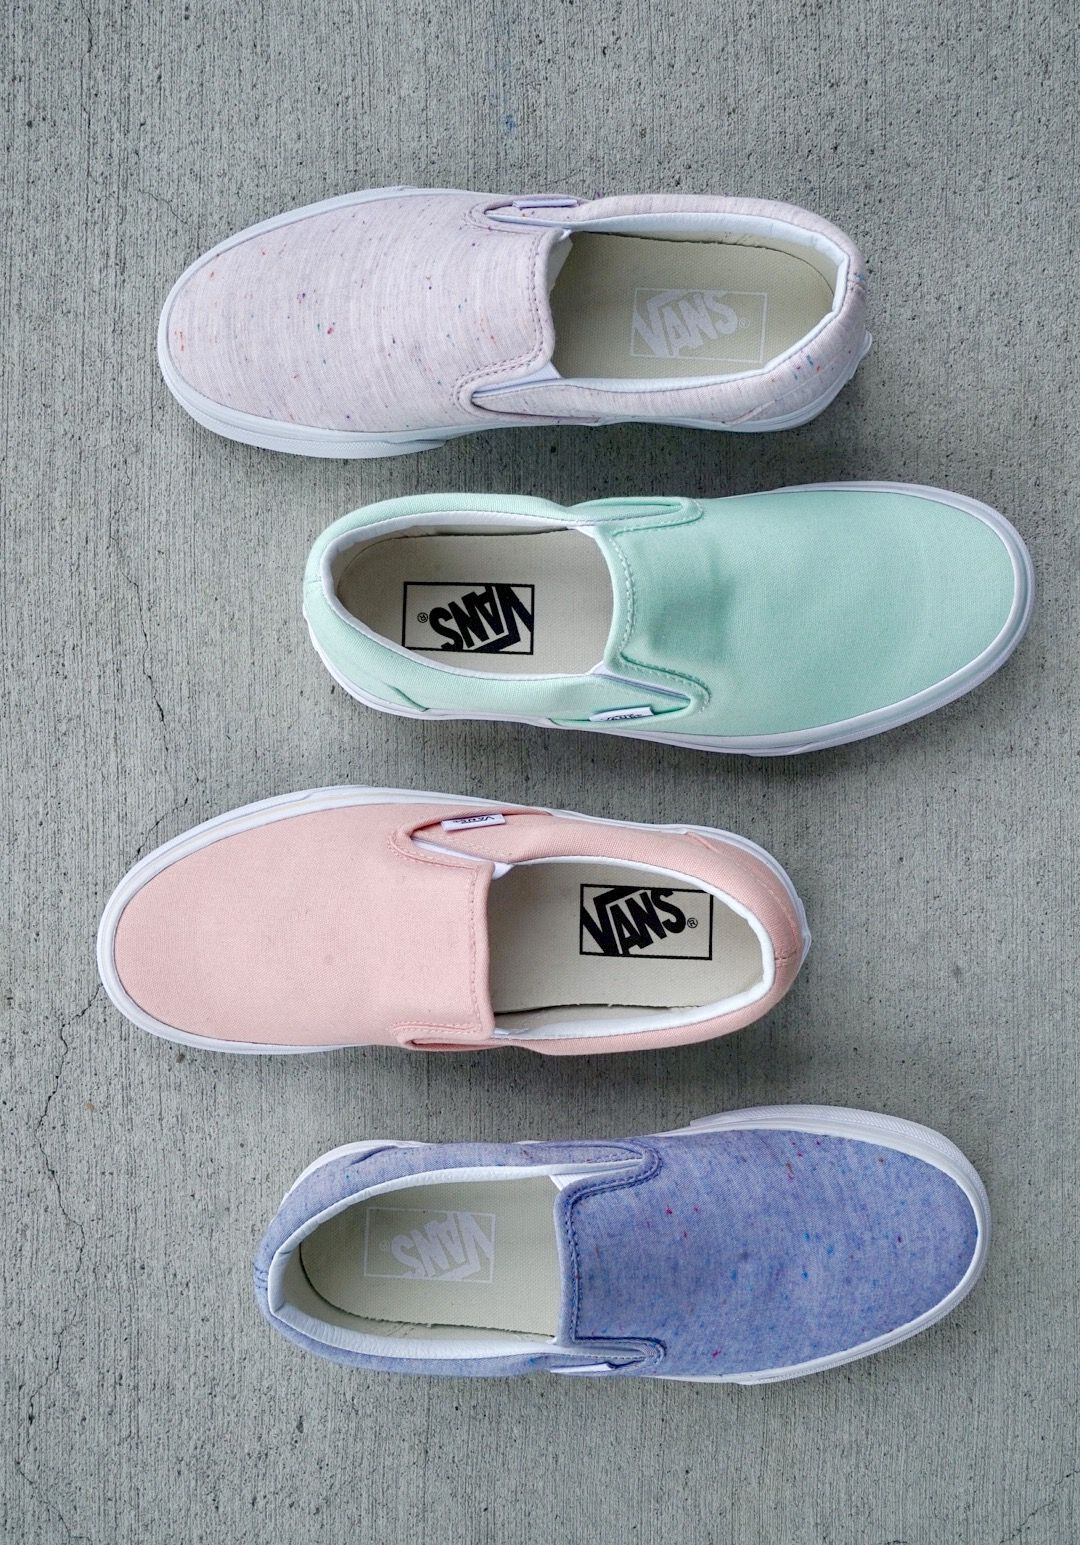 New Spring Slip Ons from Vans! How do you choose